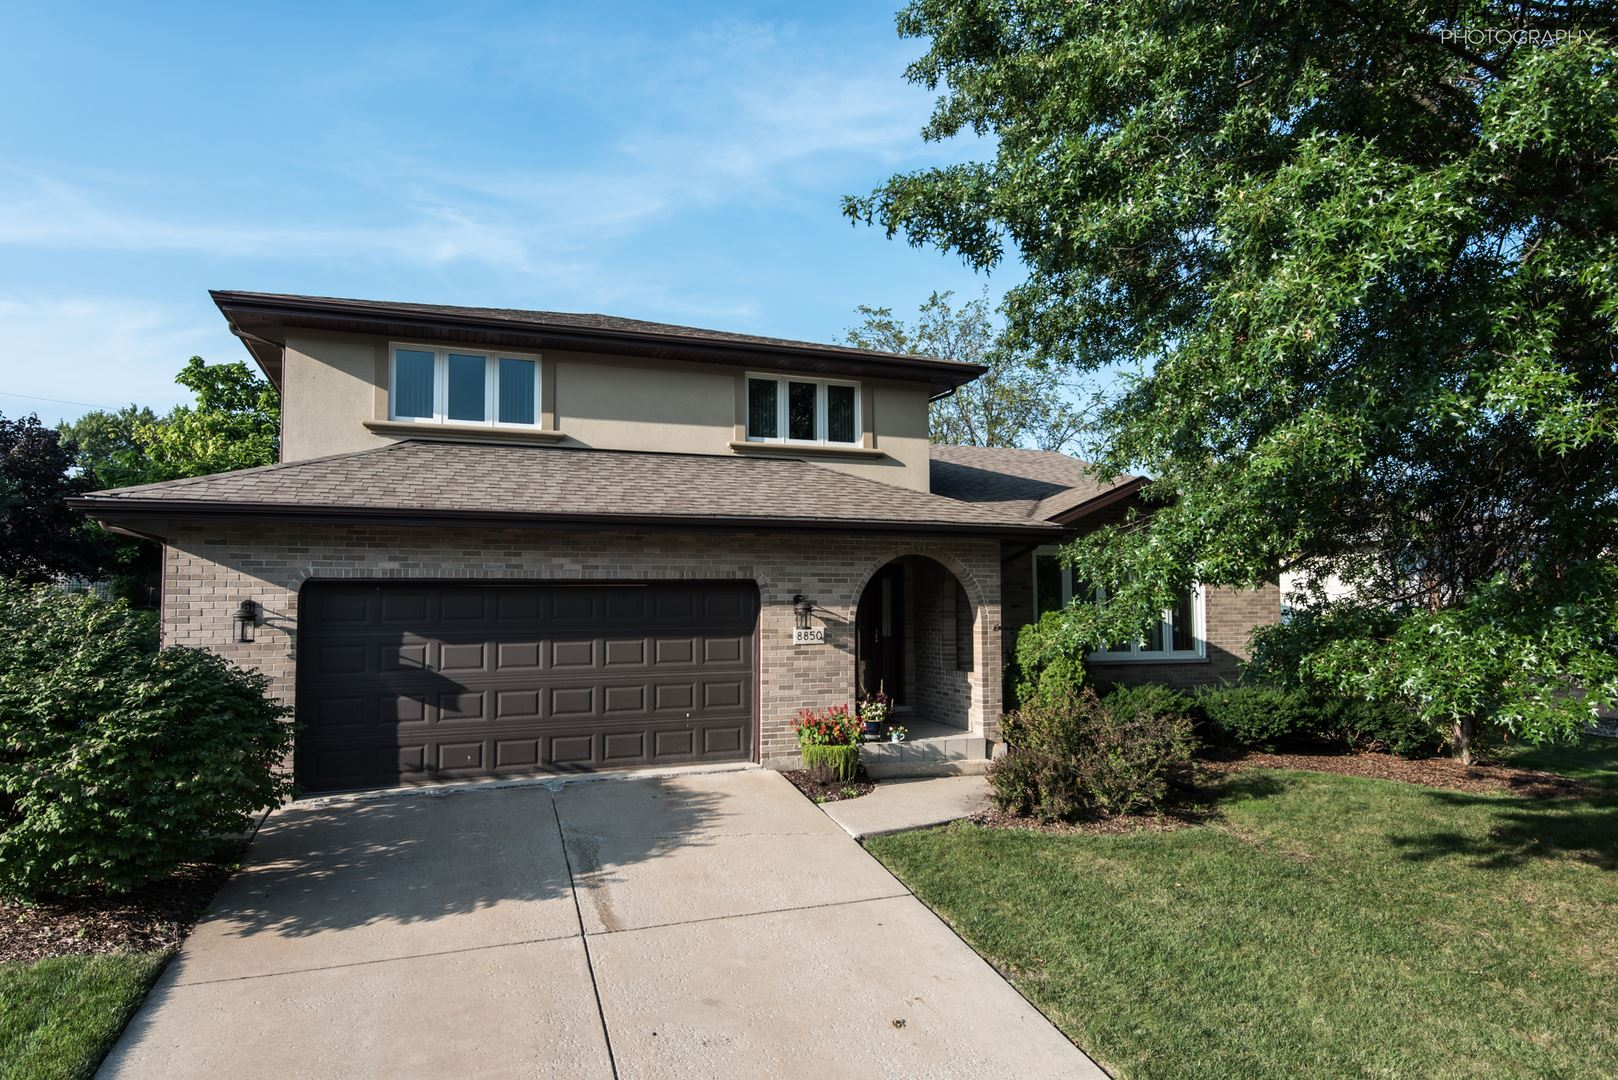 8850 W 98TH Place, Palos Hills, IL 60465 - #: 10700042